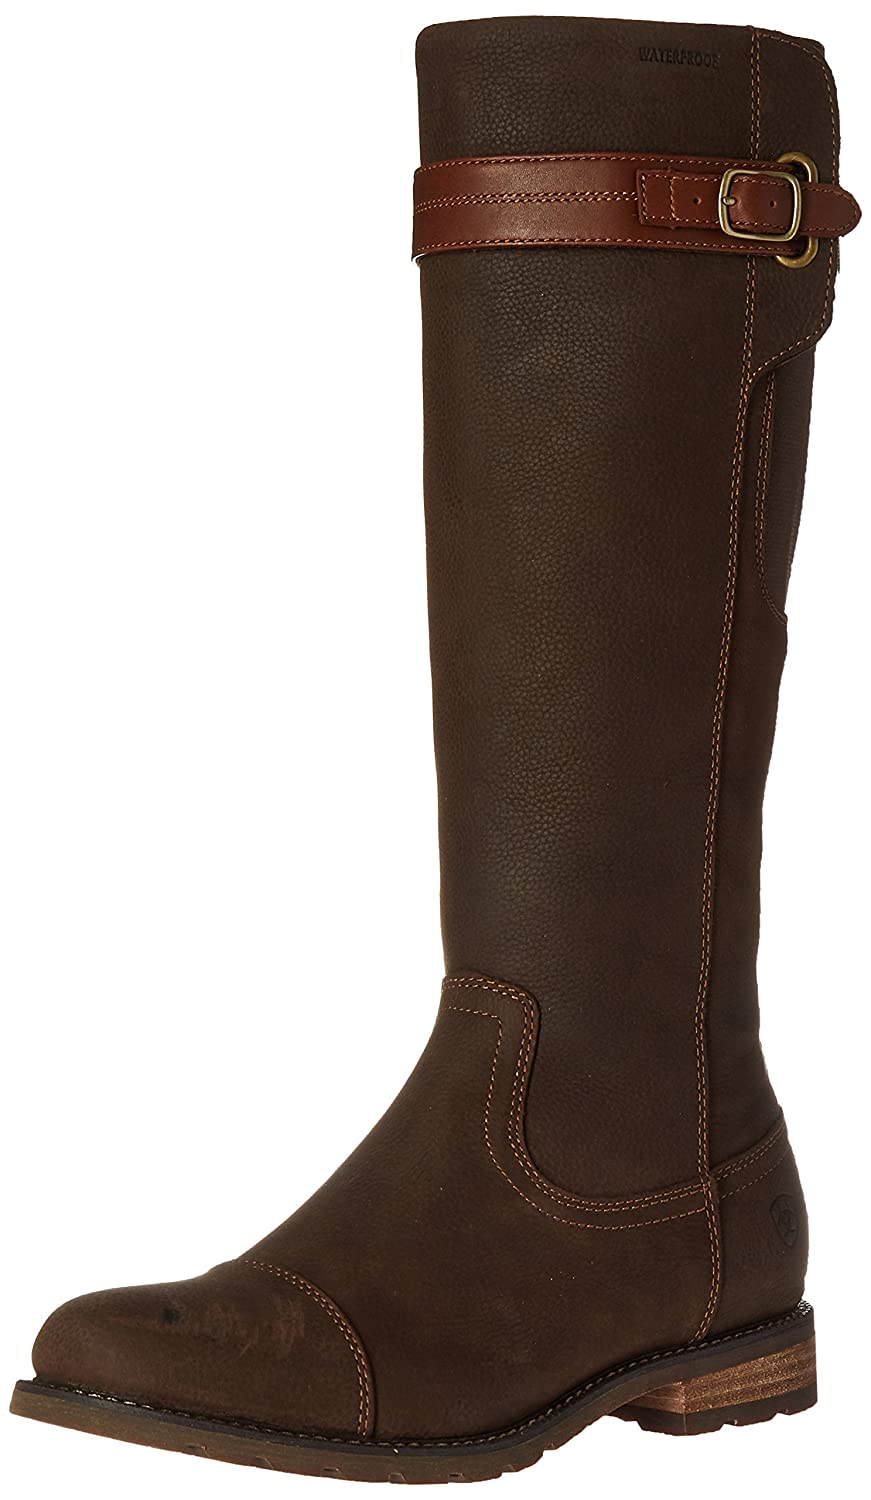 Ariat Women's Stoneleigh H2O English Paddock Boot B01BQT5JTK 8 B(M) US|Guinness